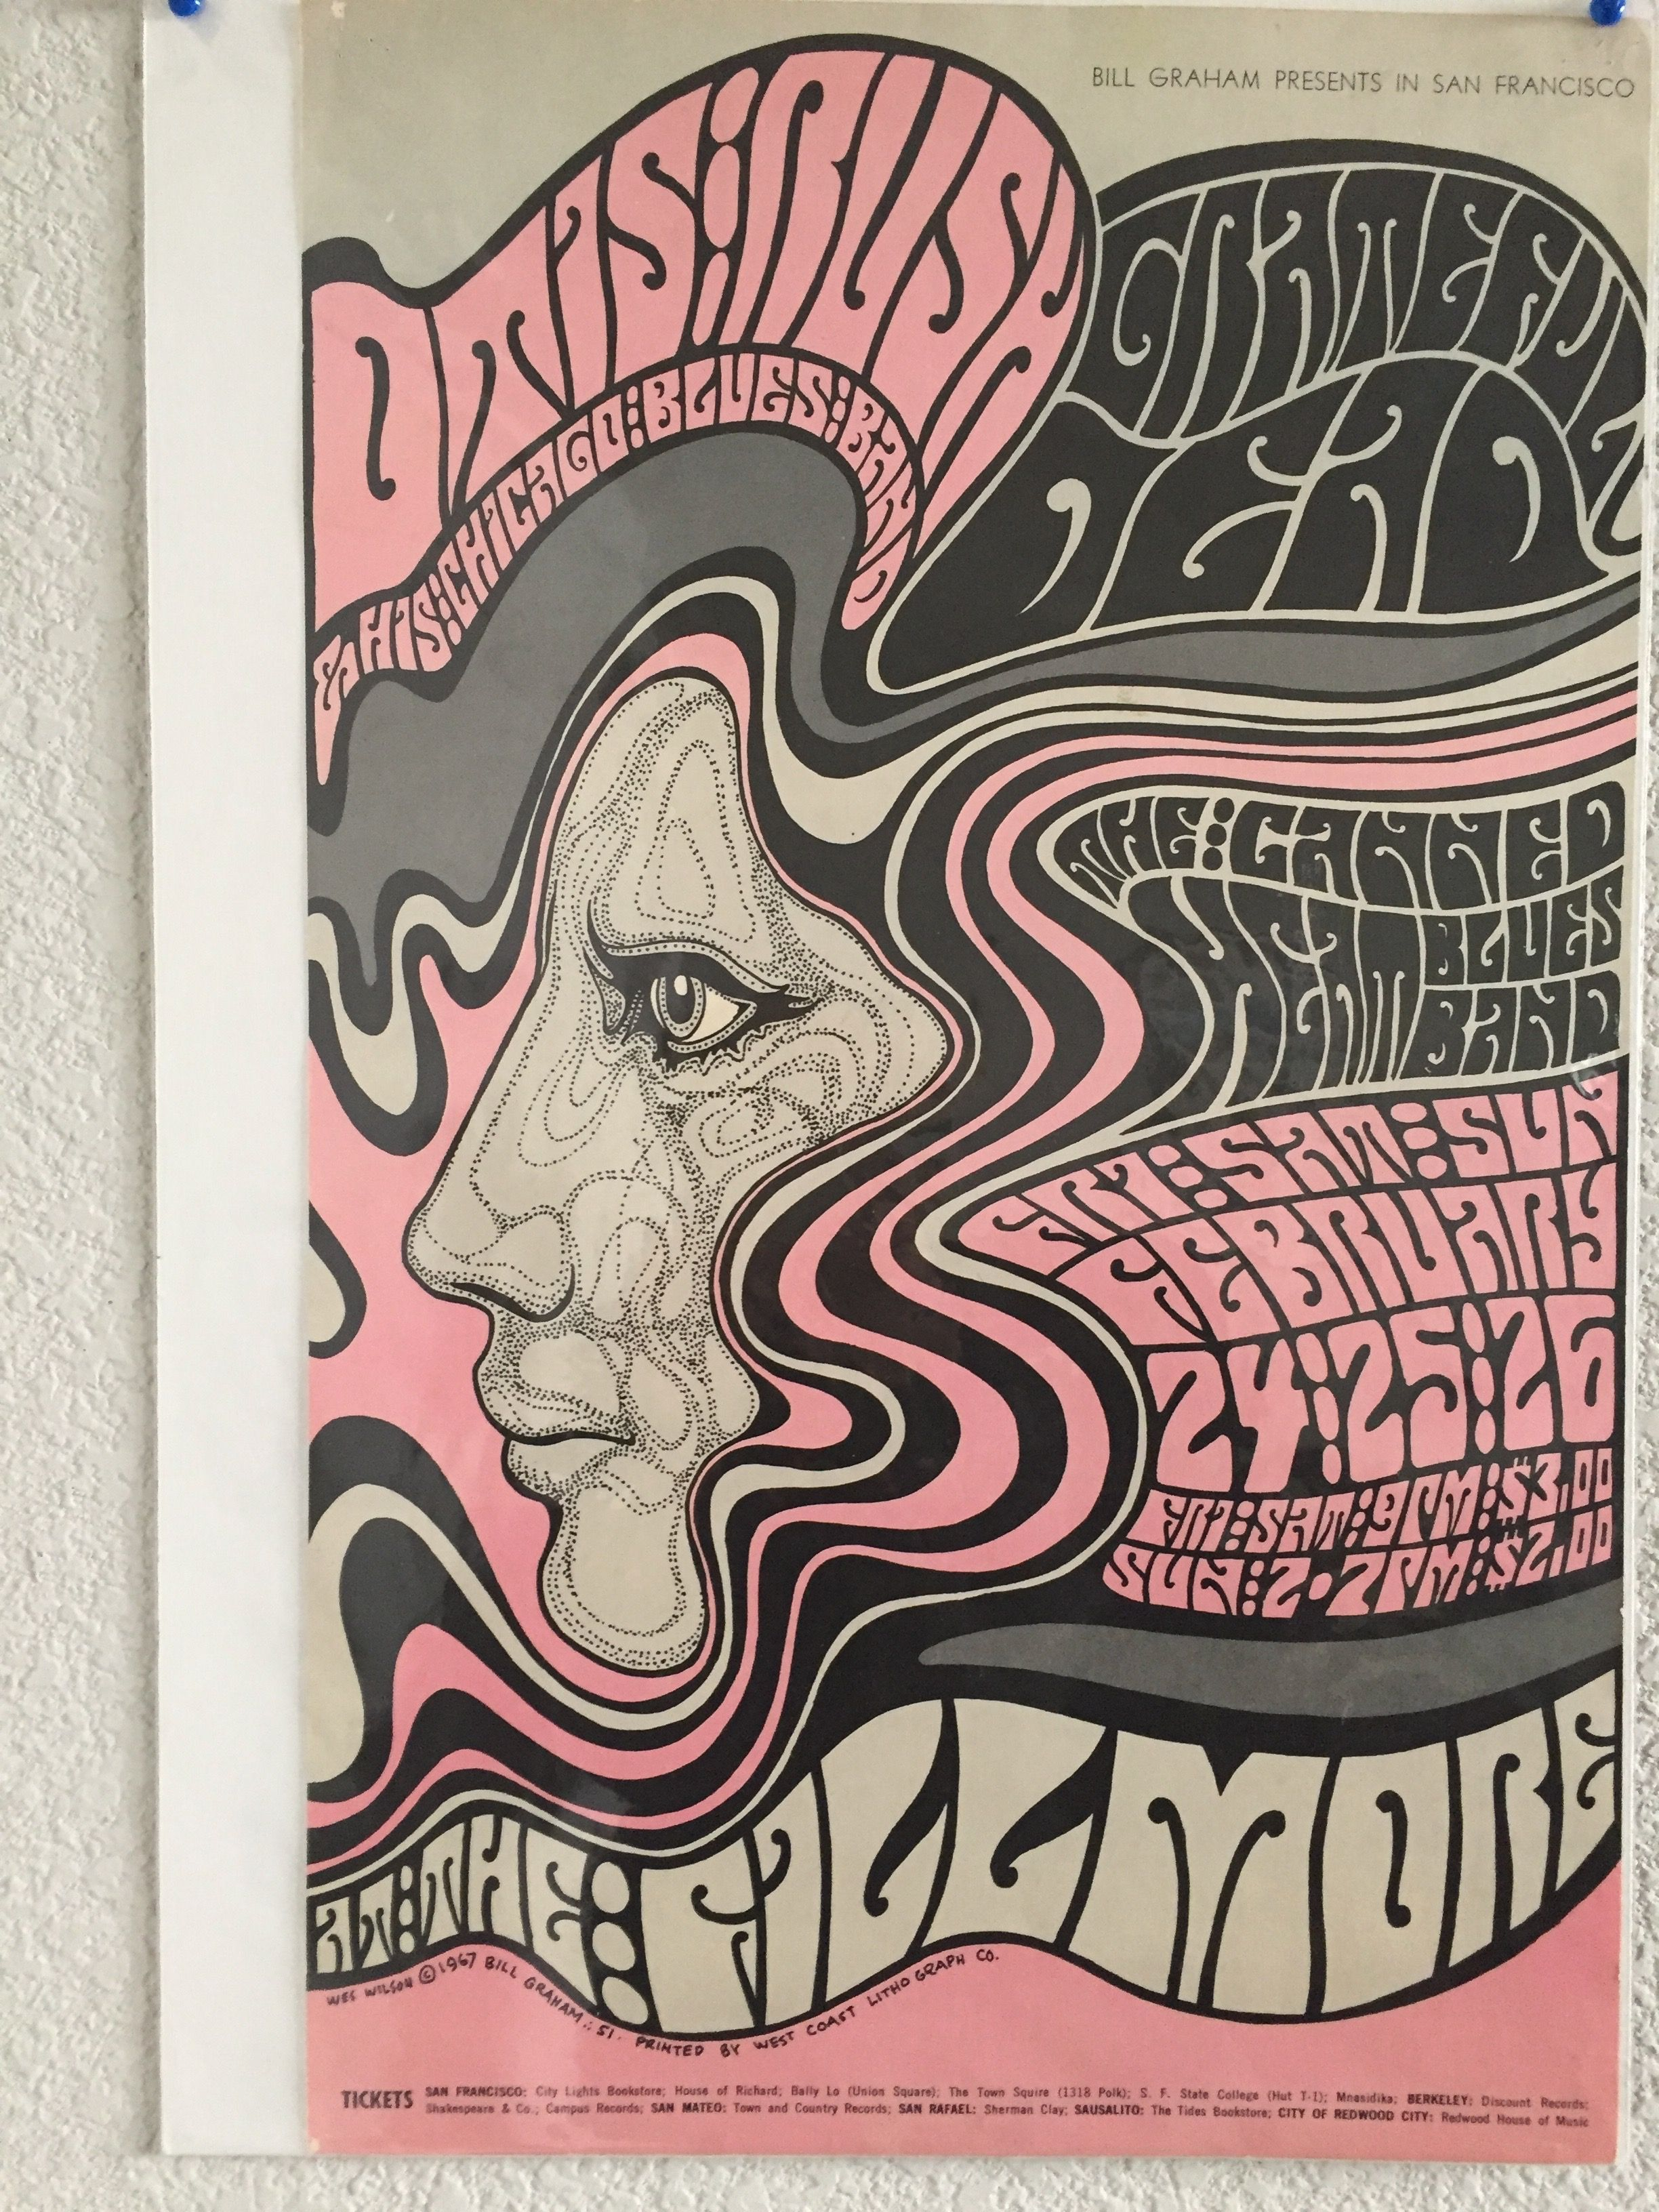 Bill Graham Presents Original Poster From 1967 Featuring Otis Rush Grateful Dead And Canned Heat At The Fillmore